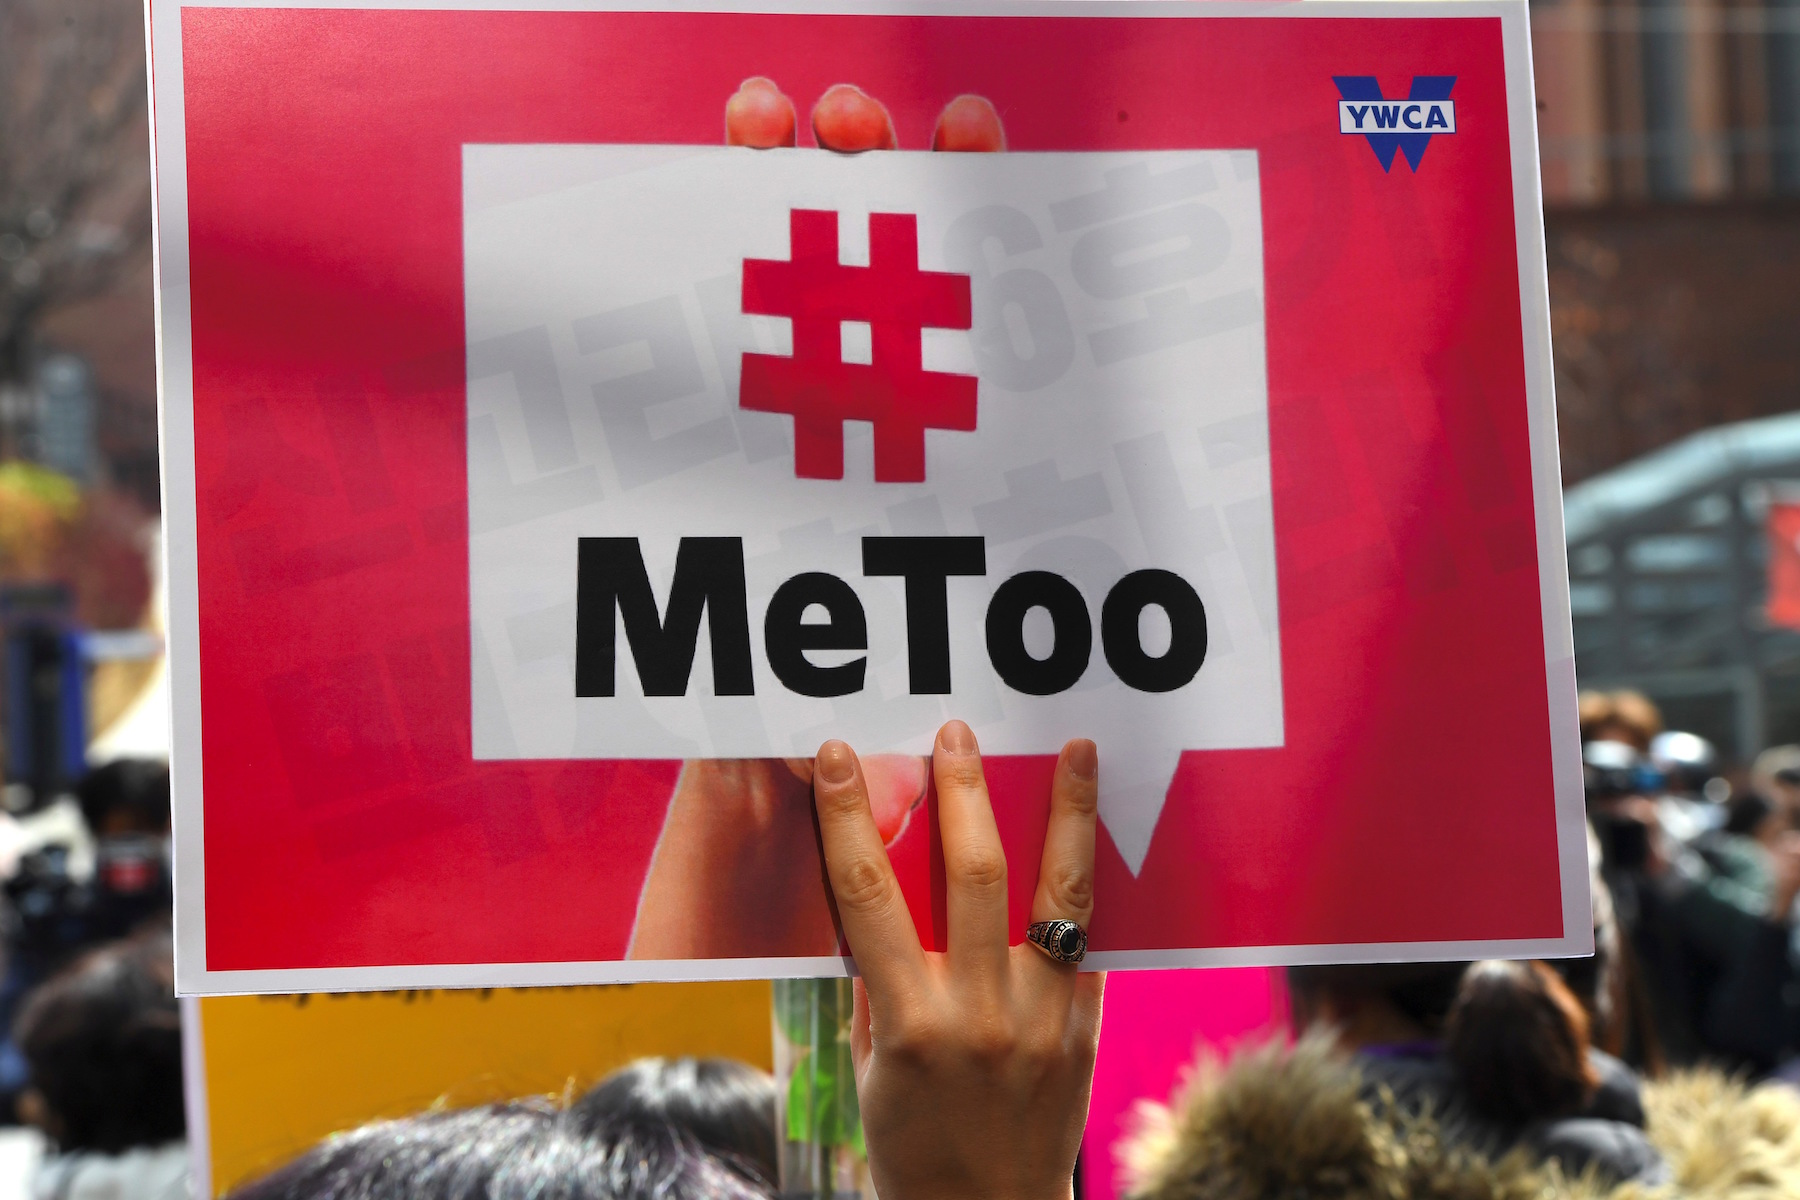 #MeToo protest sign